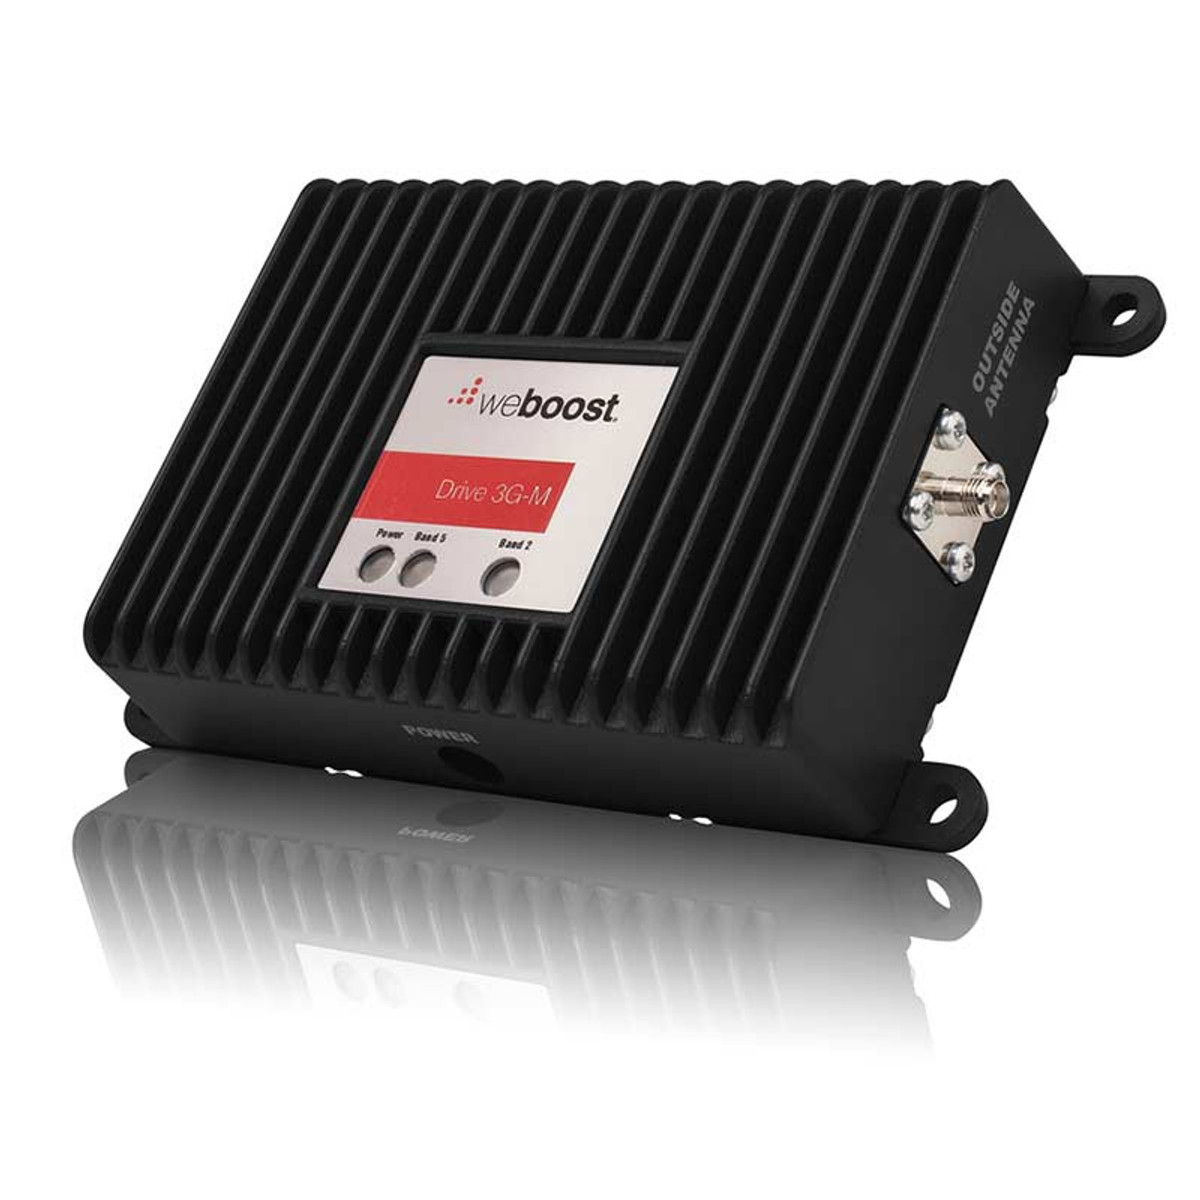 weBoost Drive 3G-M Cell Phone Signal Booster | 470102 Alt View